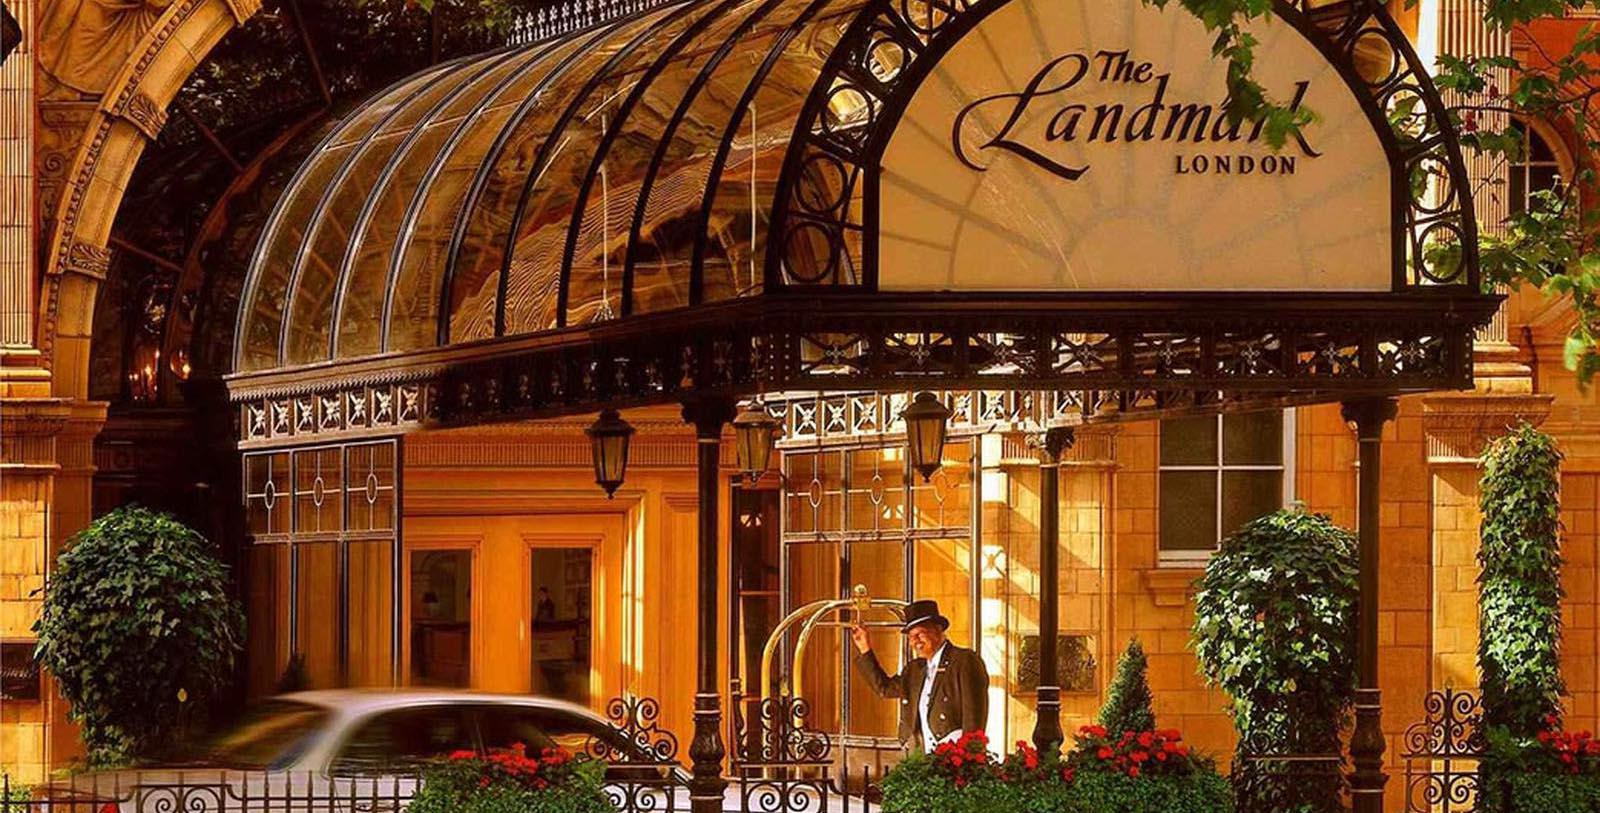 Image of Hotel Front Entrance at The Landmark London, 1899, Member of Historic Hotels Worldwide, in London, England, United Kingdom, Overview Image of Hotel Exterior The Landmark London, 1899, Member of Historic Hotels Worldwide, in London, England, United Kingdom, Overview